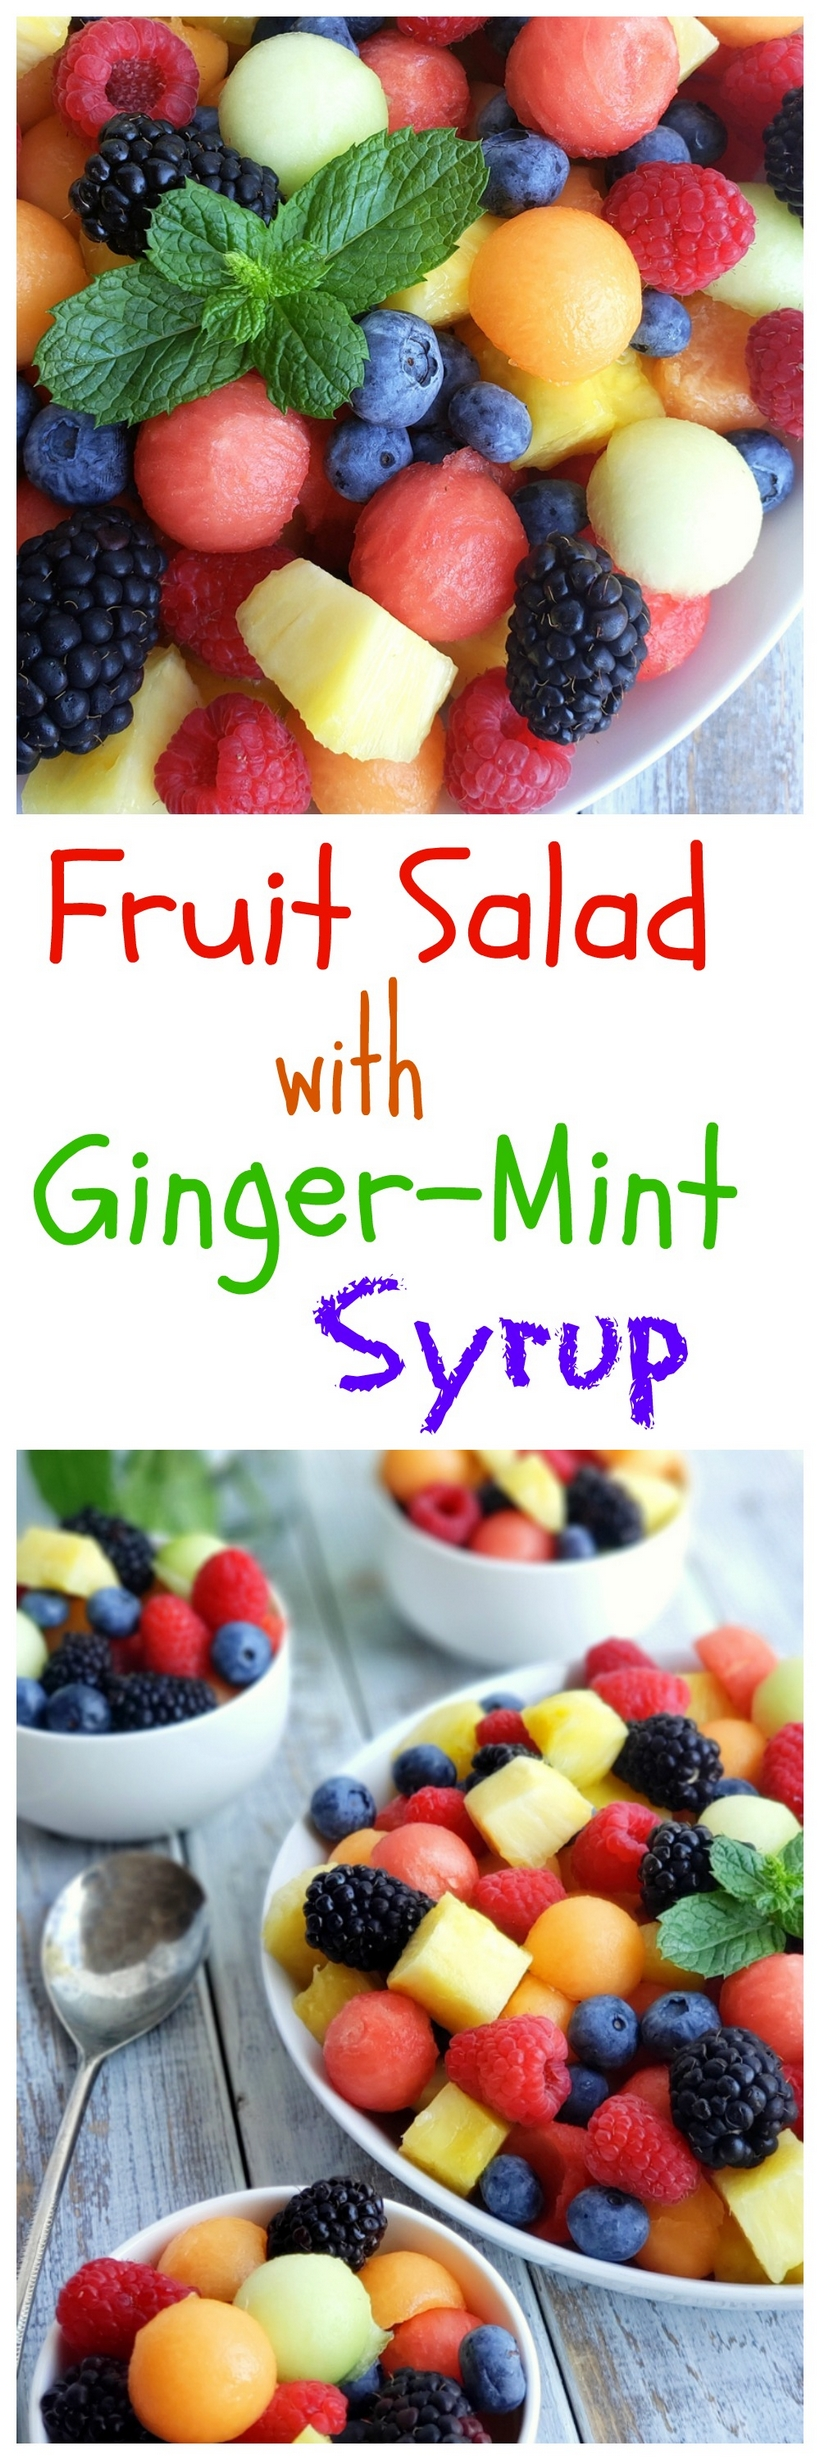 Almost any fruit is excellent here - even peaches, nectarines and cherries would work well in this Fruit Salad with Ginger-Mint Syrup. Use what strikes you for dessert and serve with sugar cookies. The ginger-mint syrup is especially good when your fruit needs a little extra sweetness. #fruitsalad  via @cmpollak1